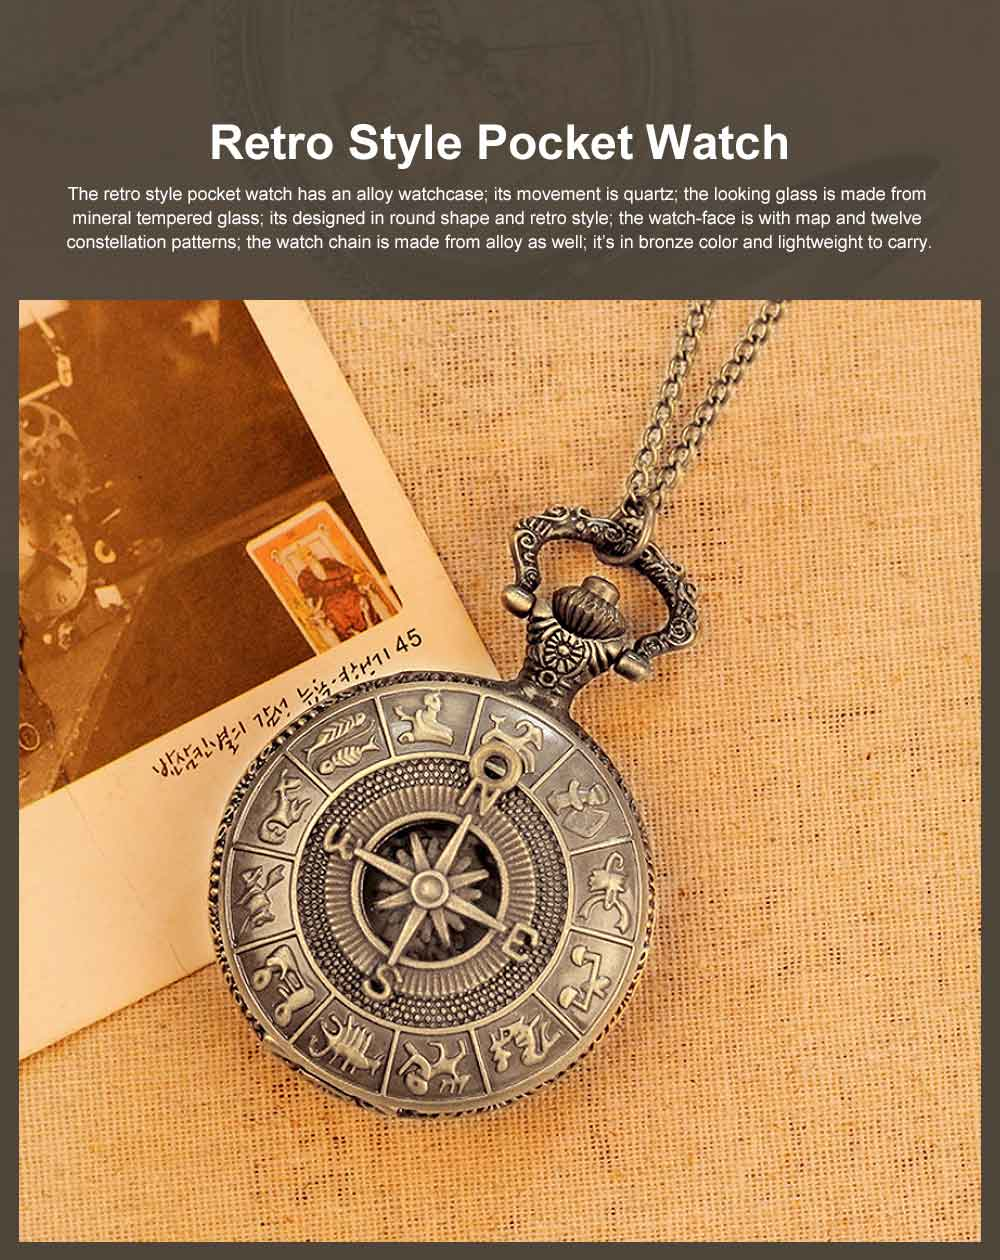 Large Size Pocket Compass with Twelve Constellation Pattern, Dial Plate Retro Style Compass, T-Pocketof Map Pattern Alloy Compass for Comping, Hiking 0